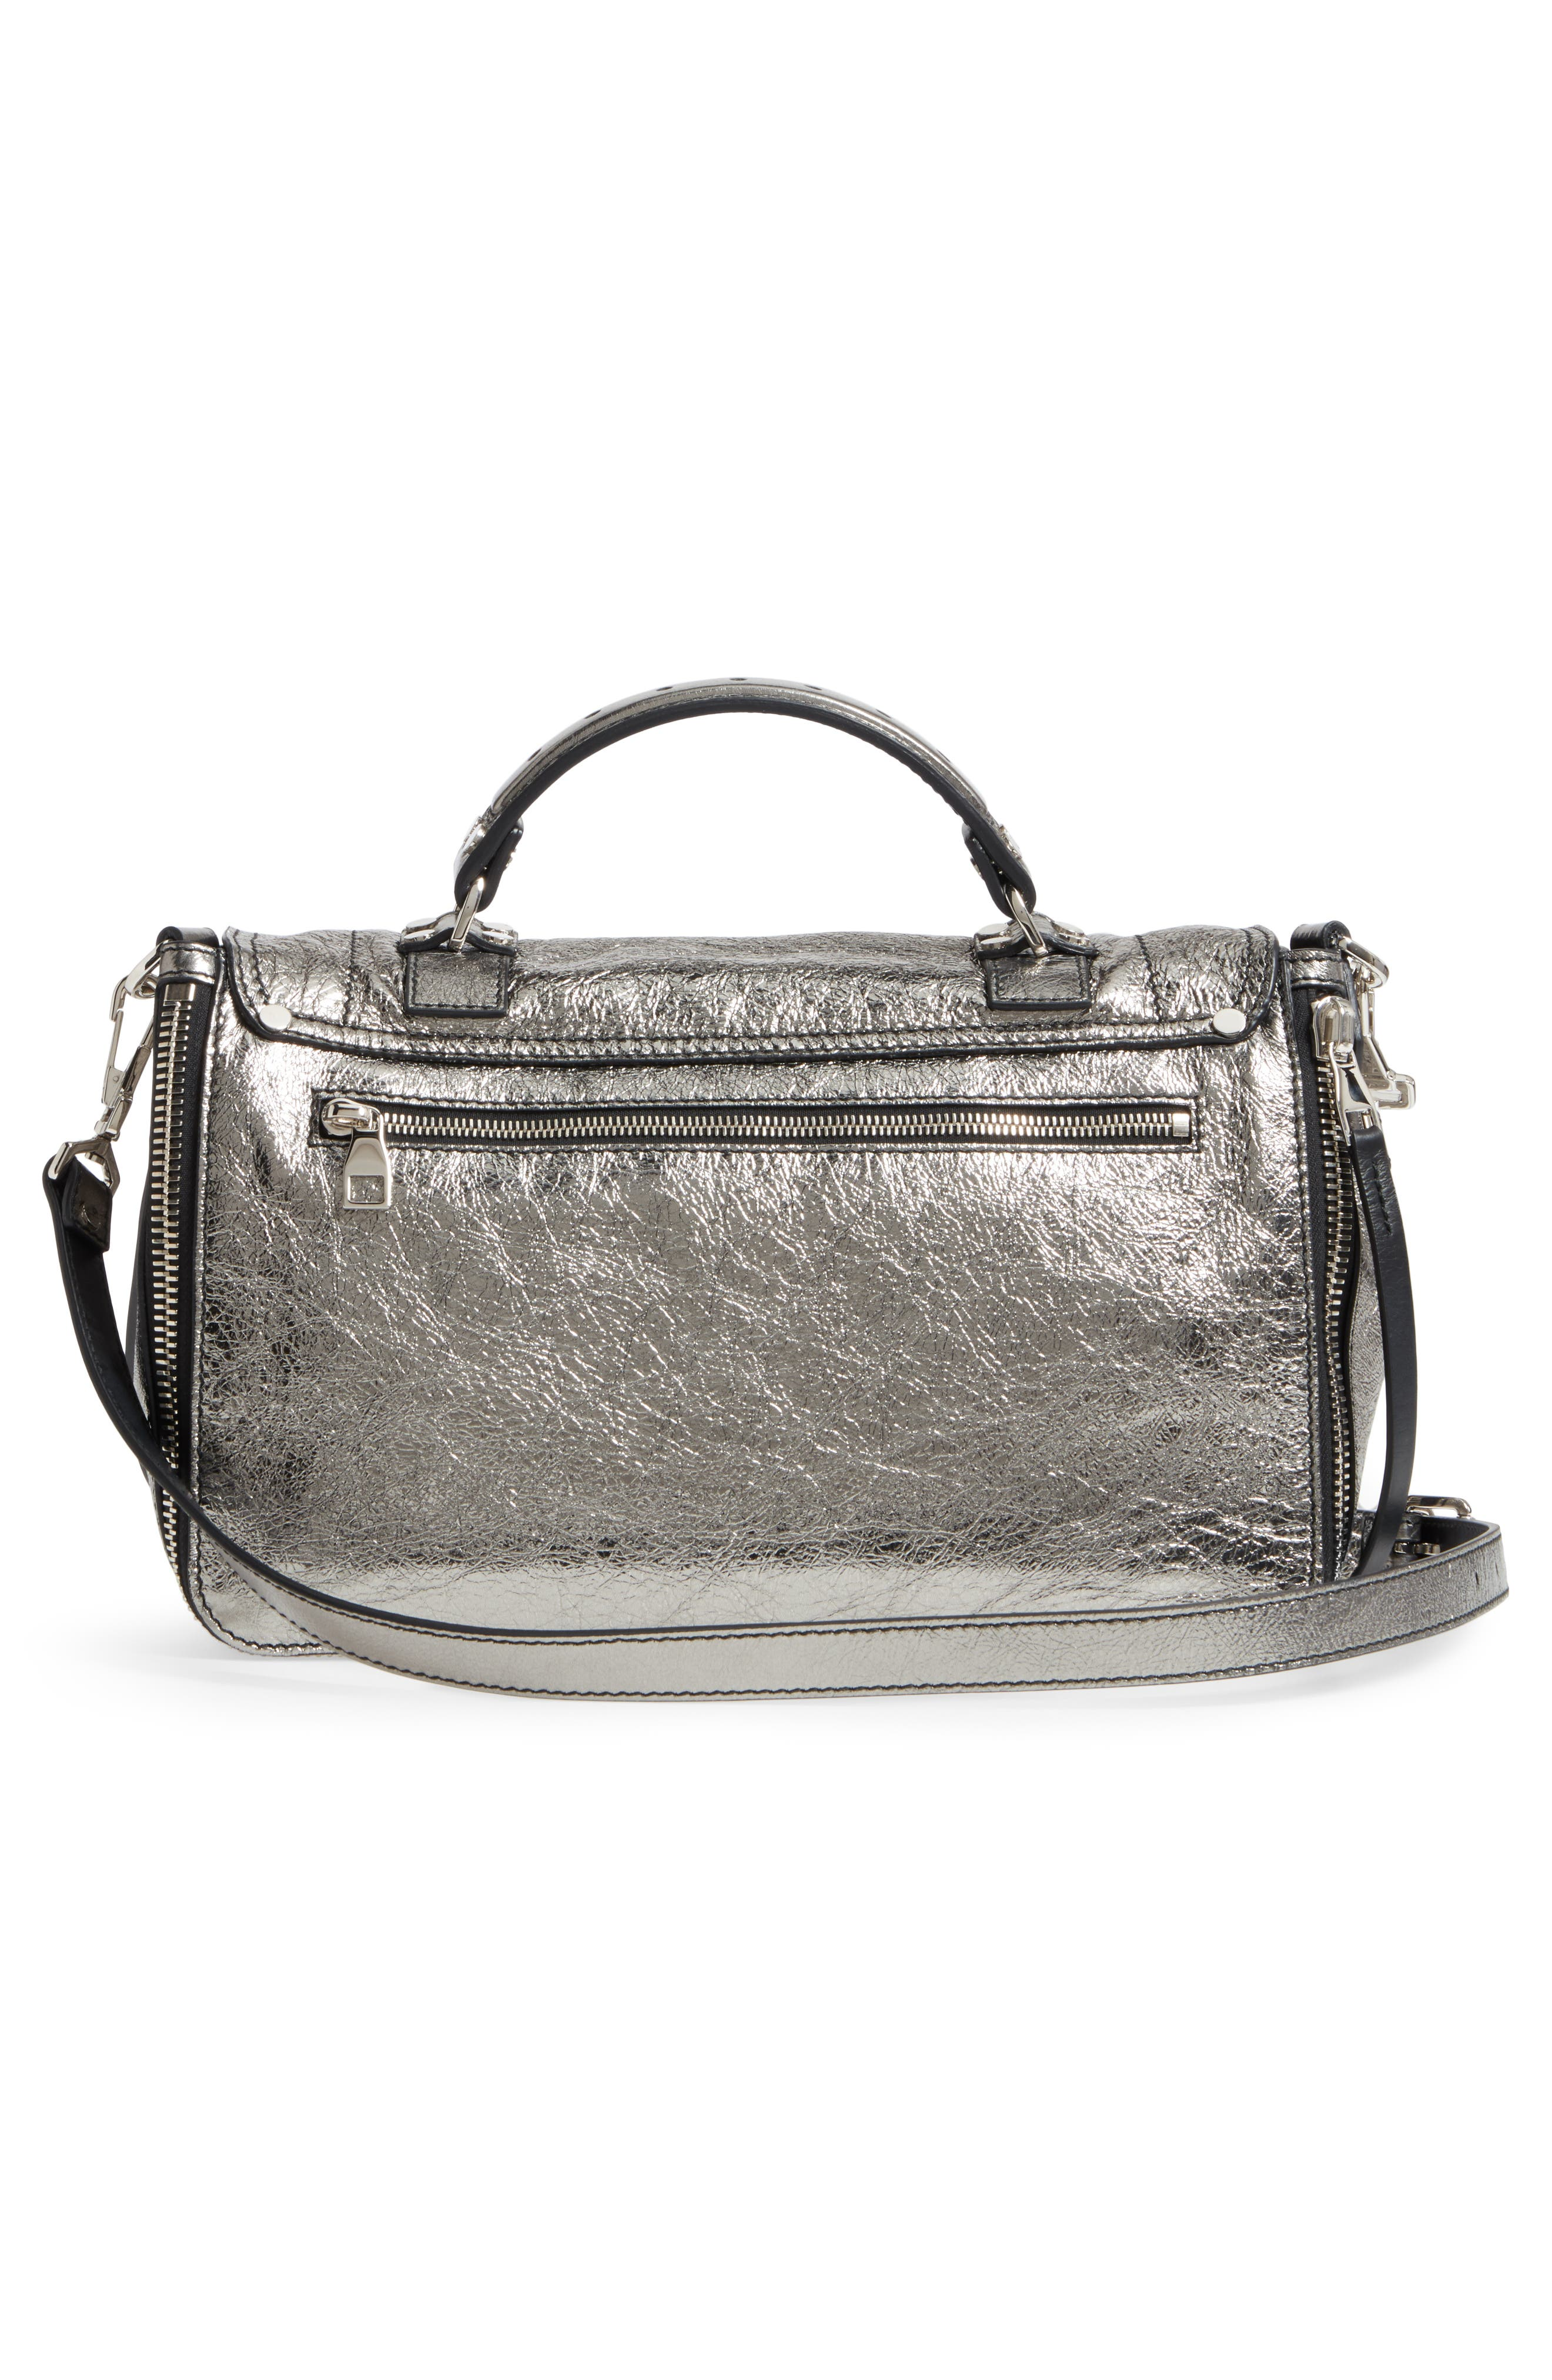 Medium PS1 Metallic Calfskin Satchel,                             Alternate thumbnail 3, color,                             Dark Silver